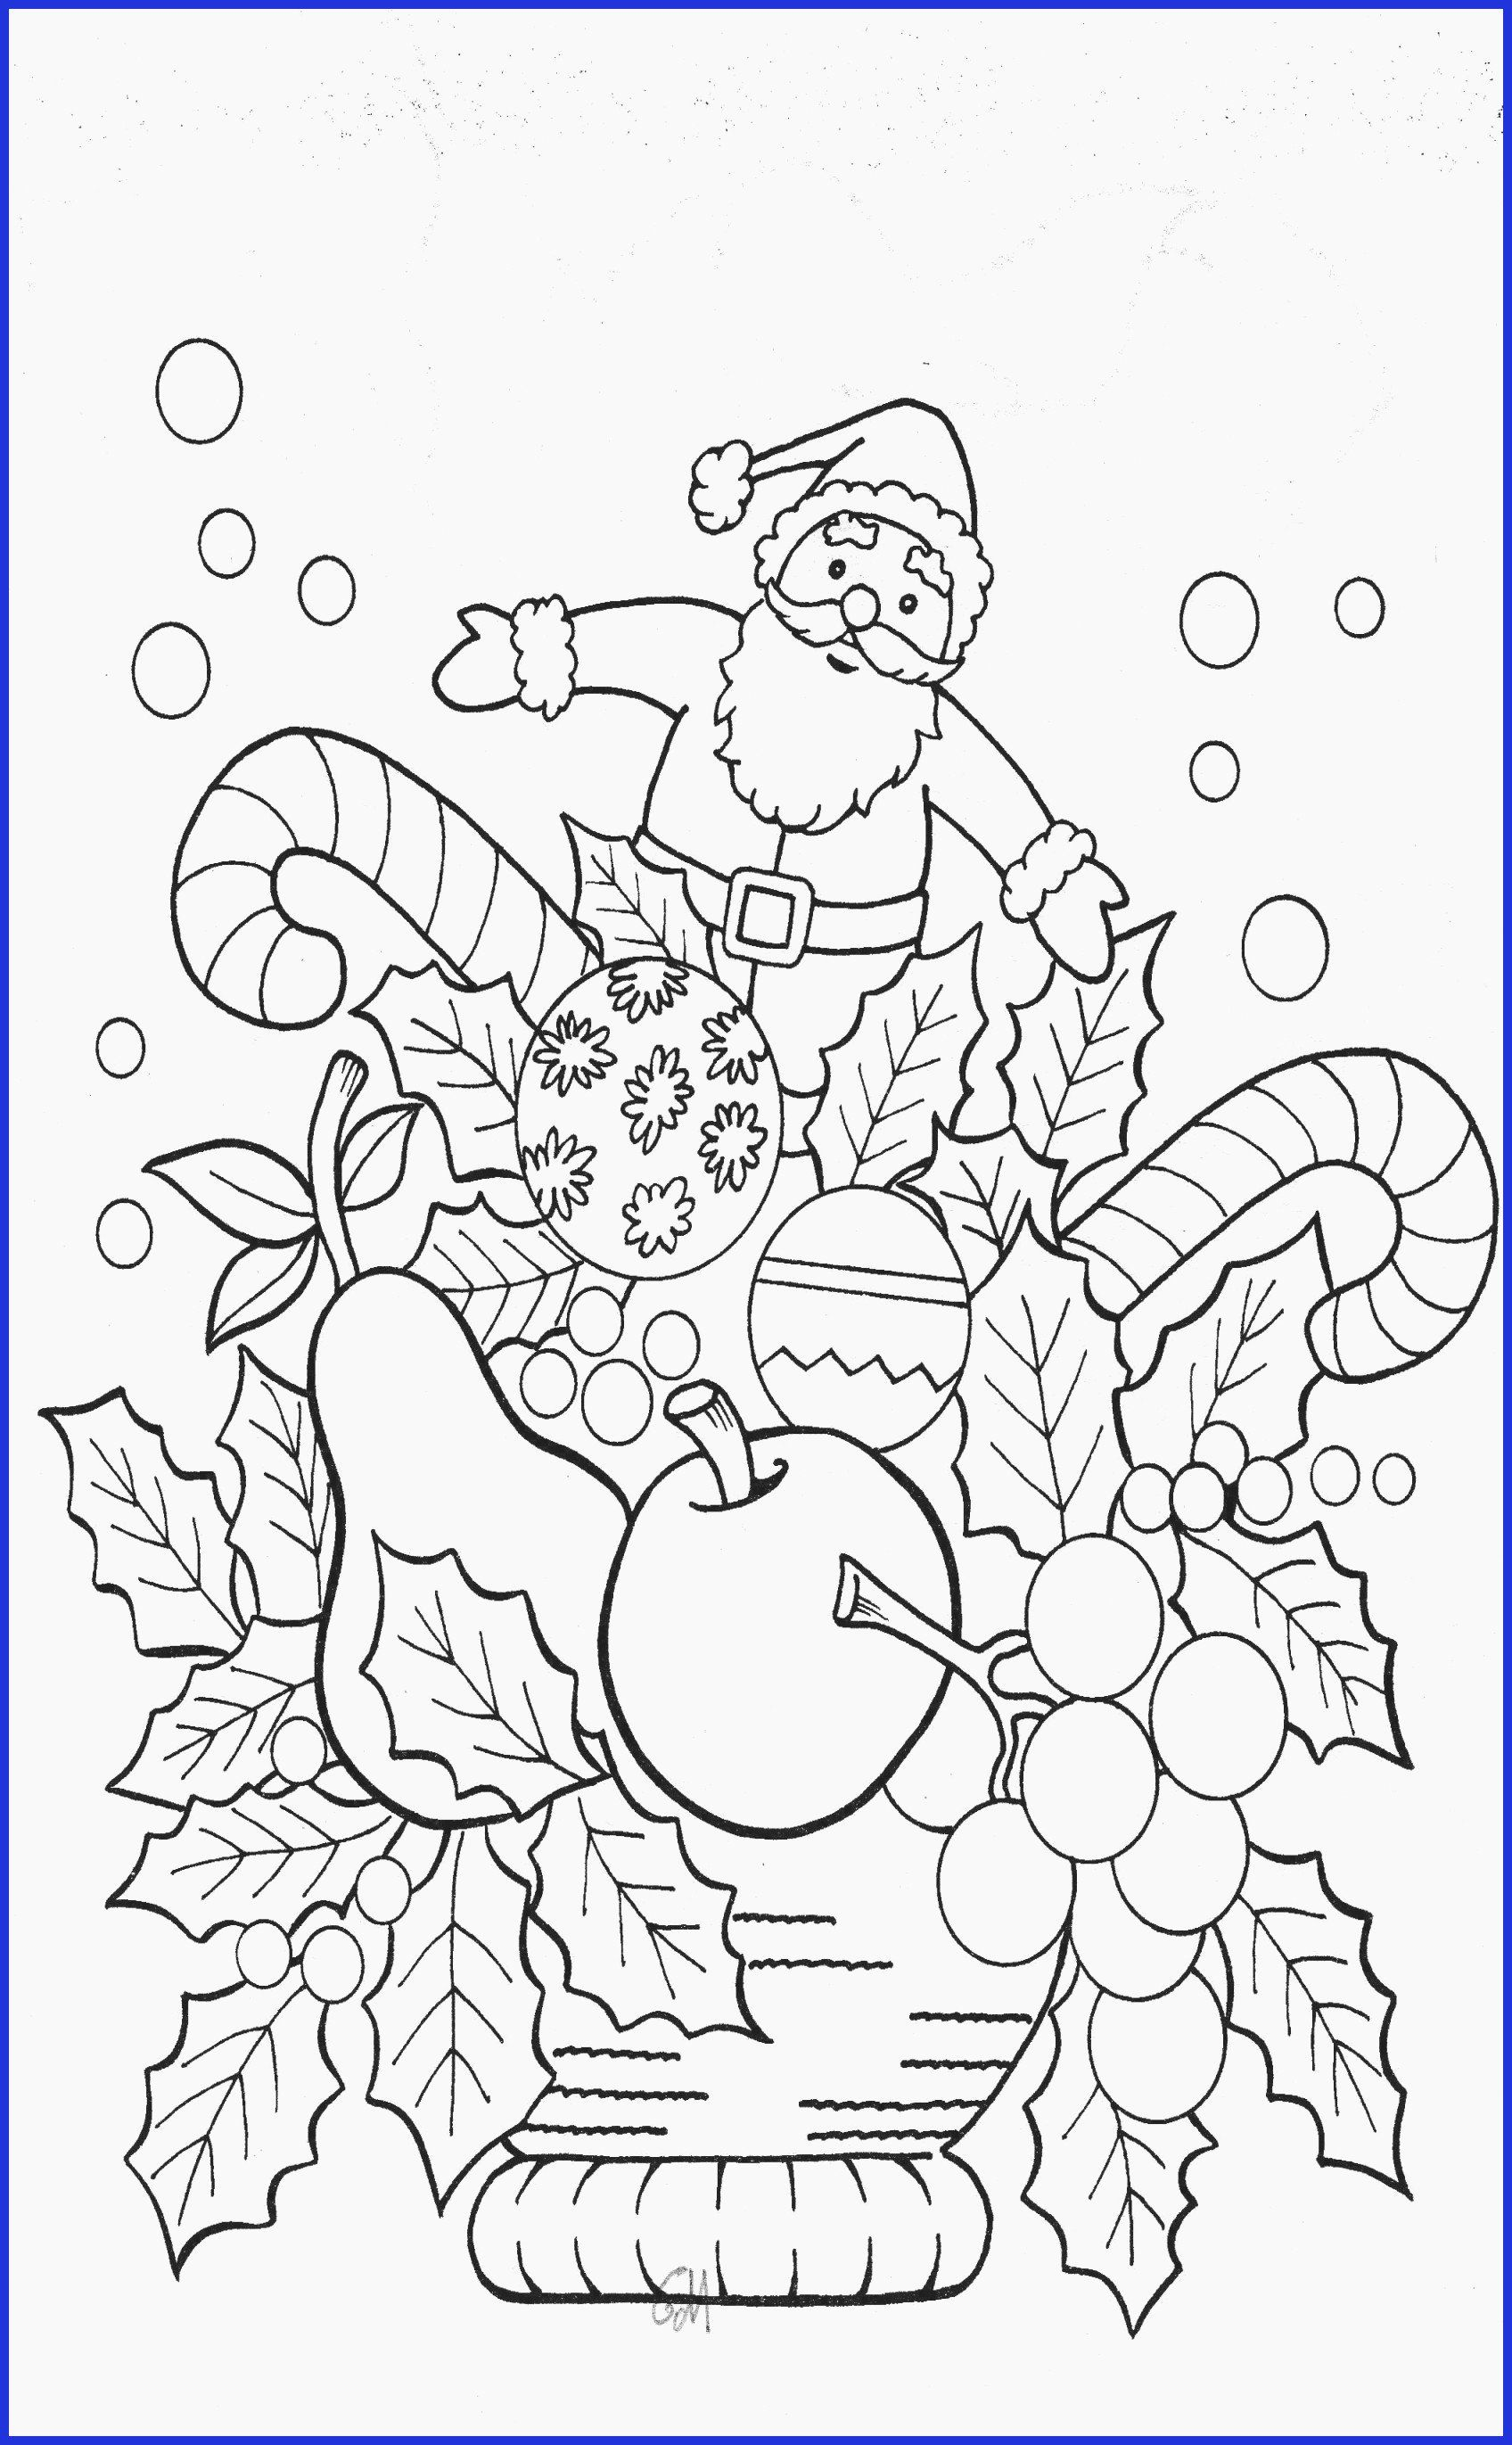 Patriotic Coloring Pages For Preschool Best Of Dinotrux Coloring Pages Christmas Coloring Books School Coloring Pages Tree Coloring Page